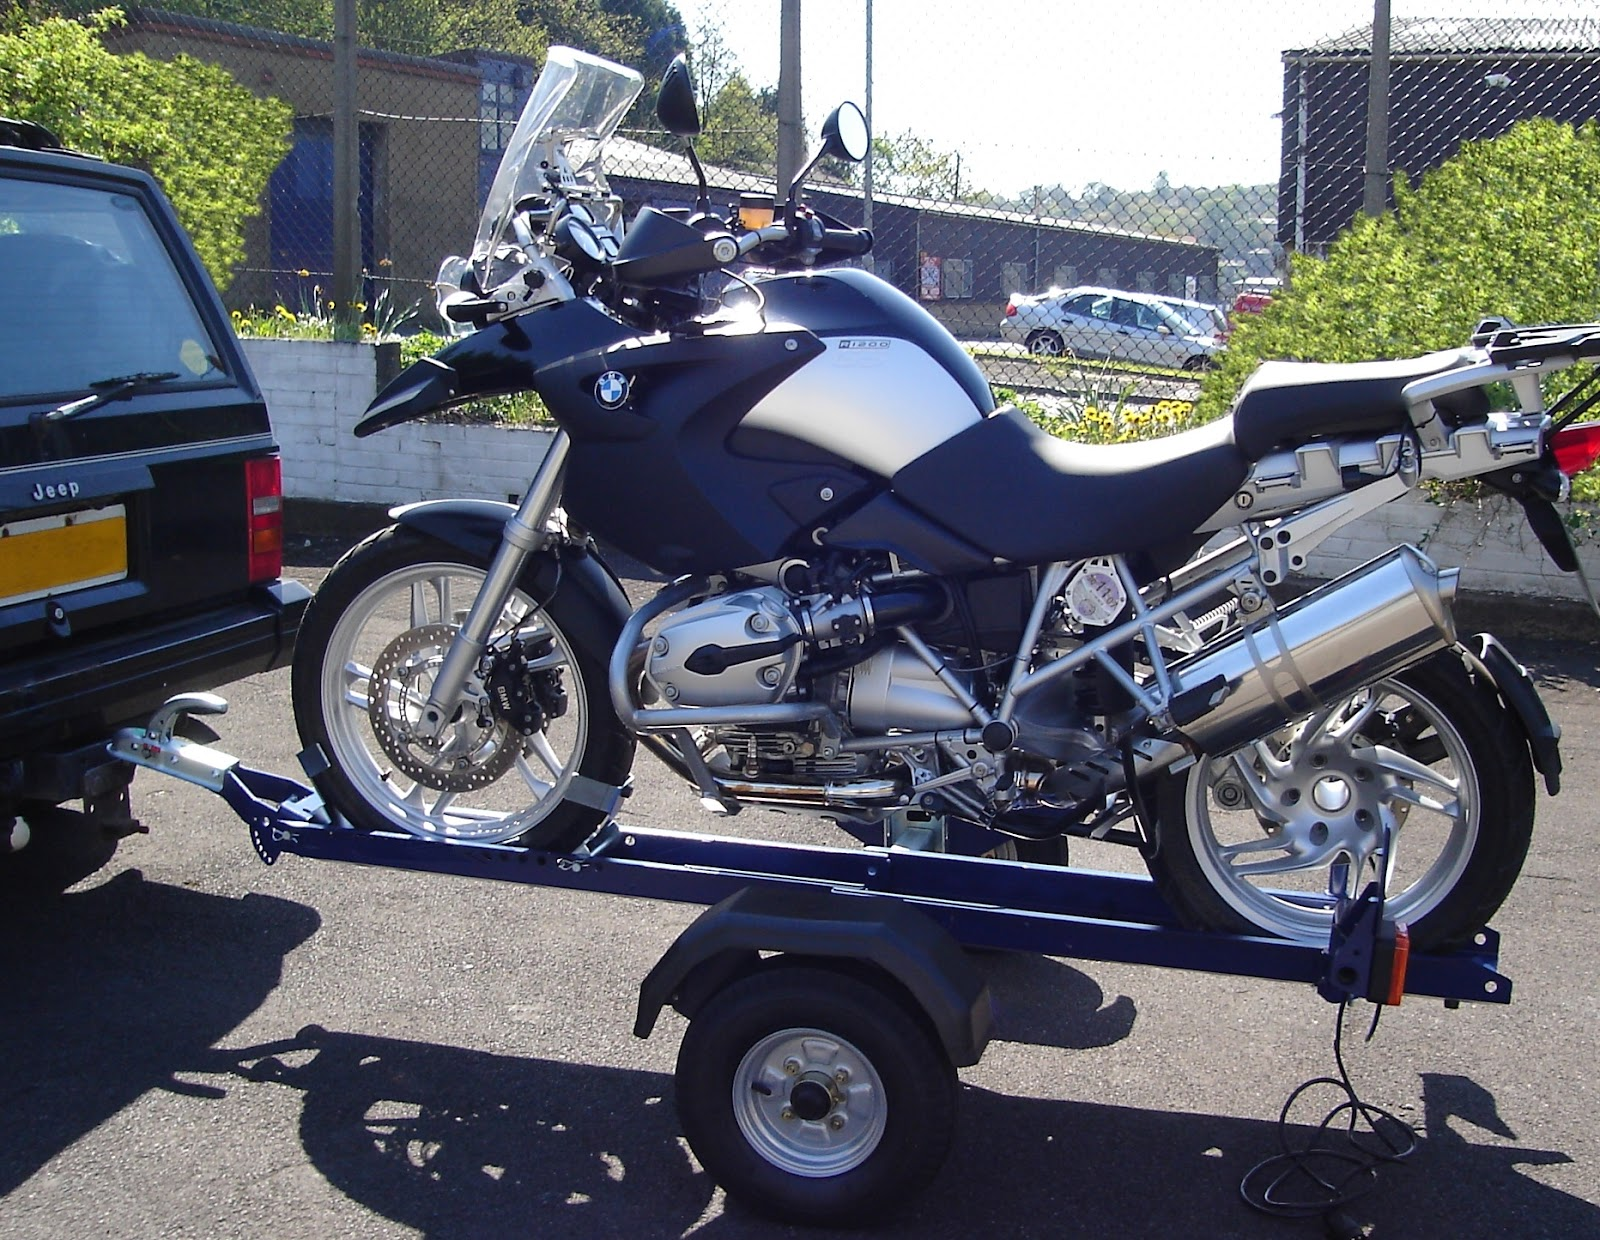 trailer motorcycle trailers bike motorcycles hitch scooter hauler dd latter means way